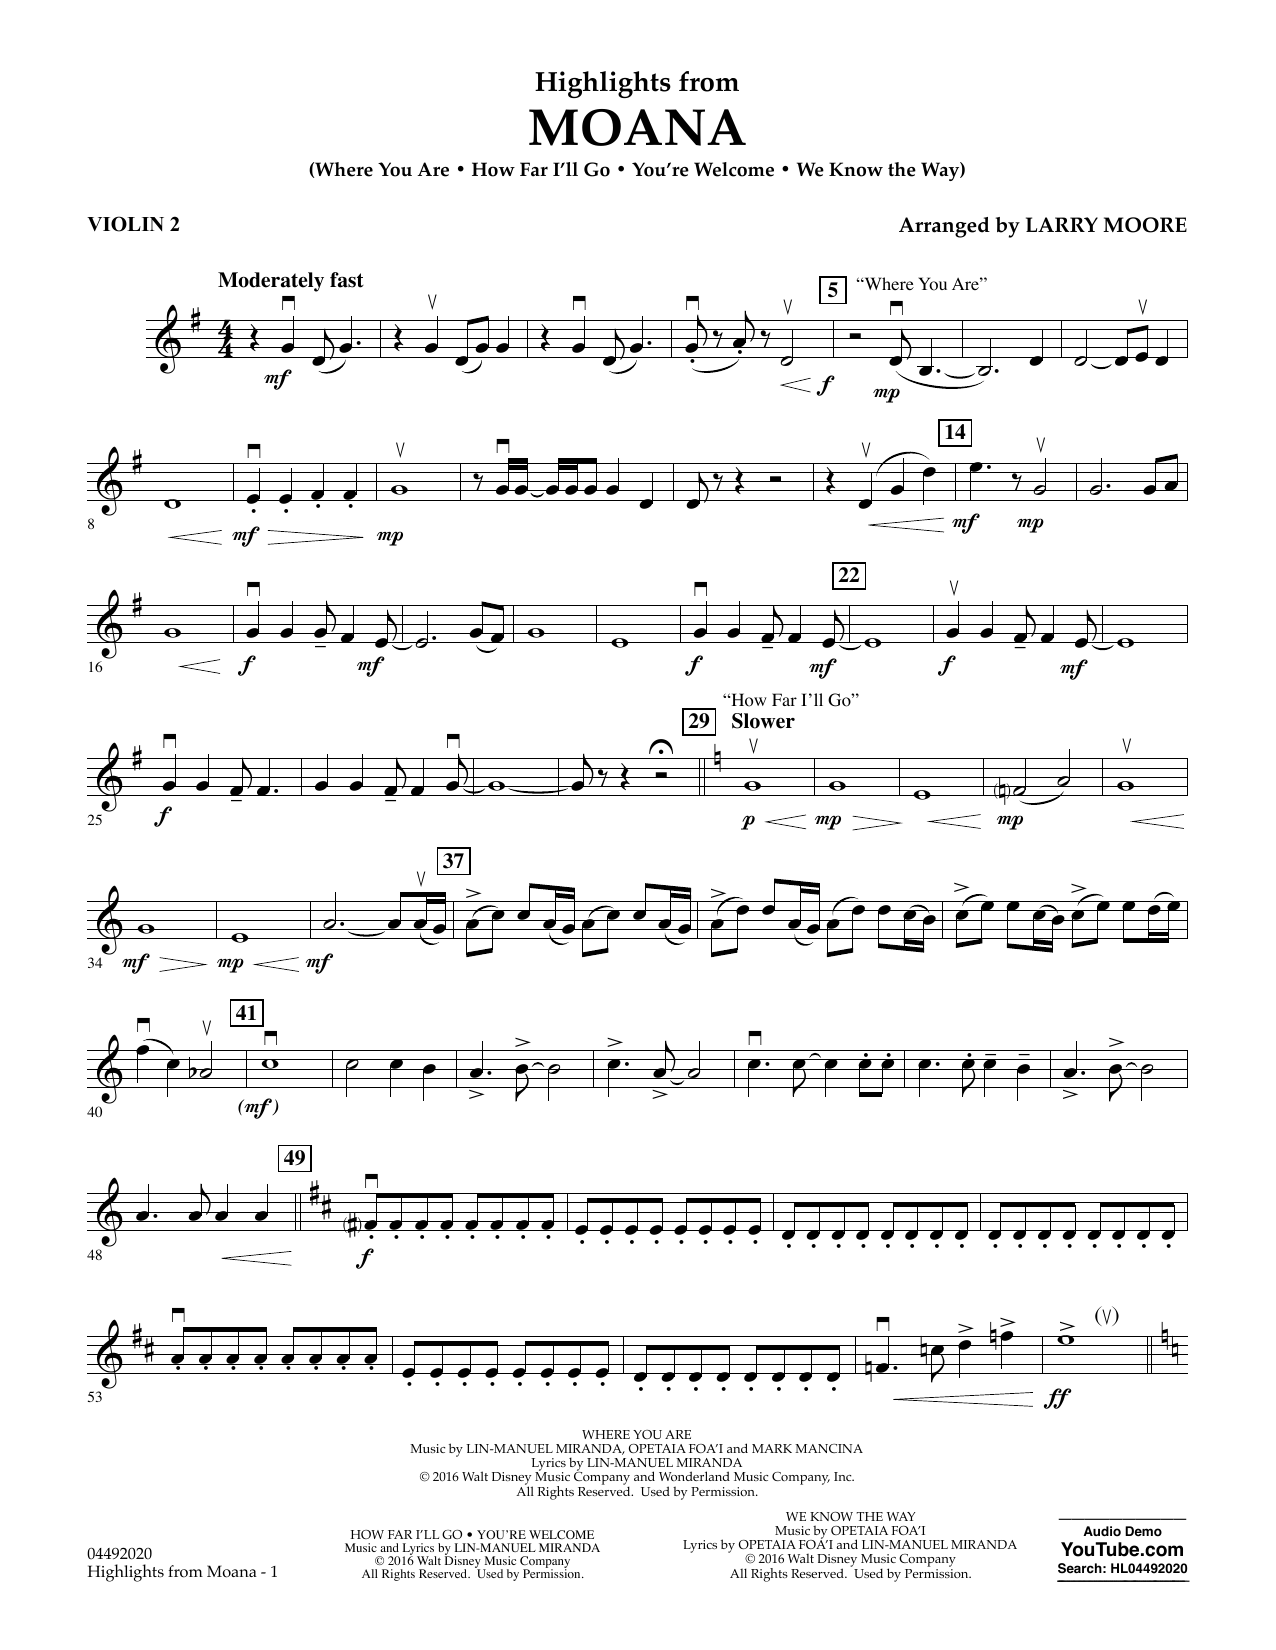 Larry Moore Highlights from Moana - Violin 2 sheet music notes and chords. Download Printable PDF.